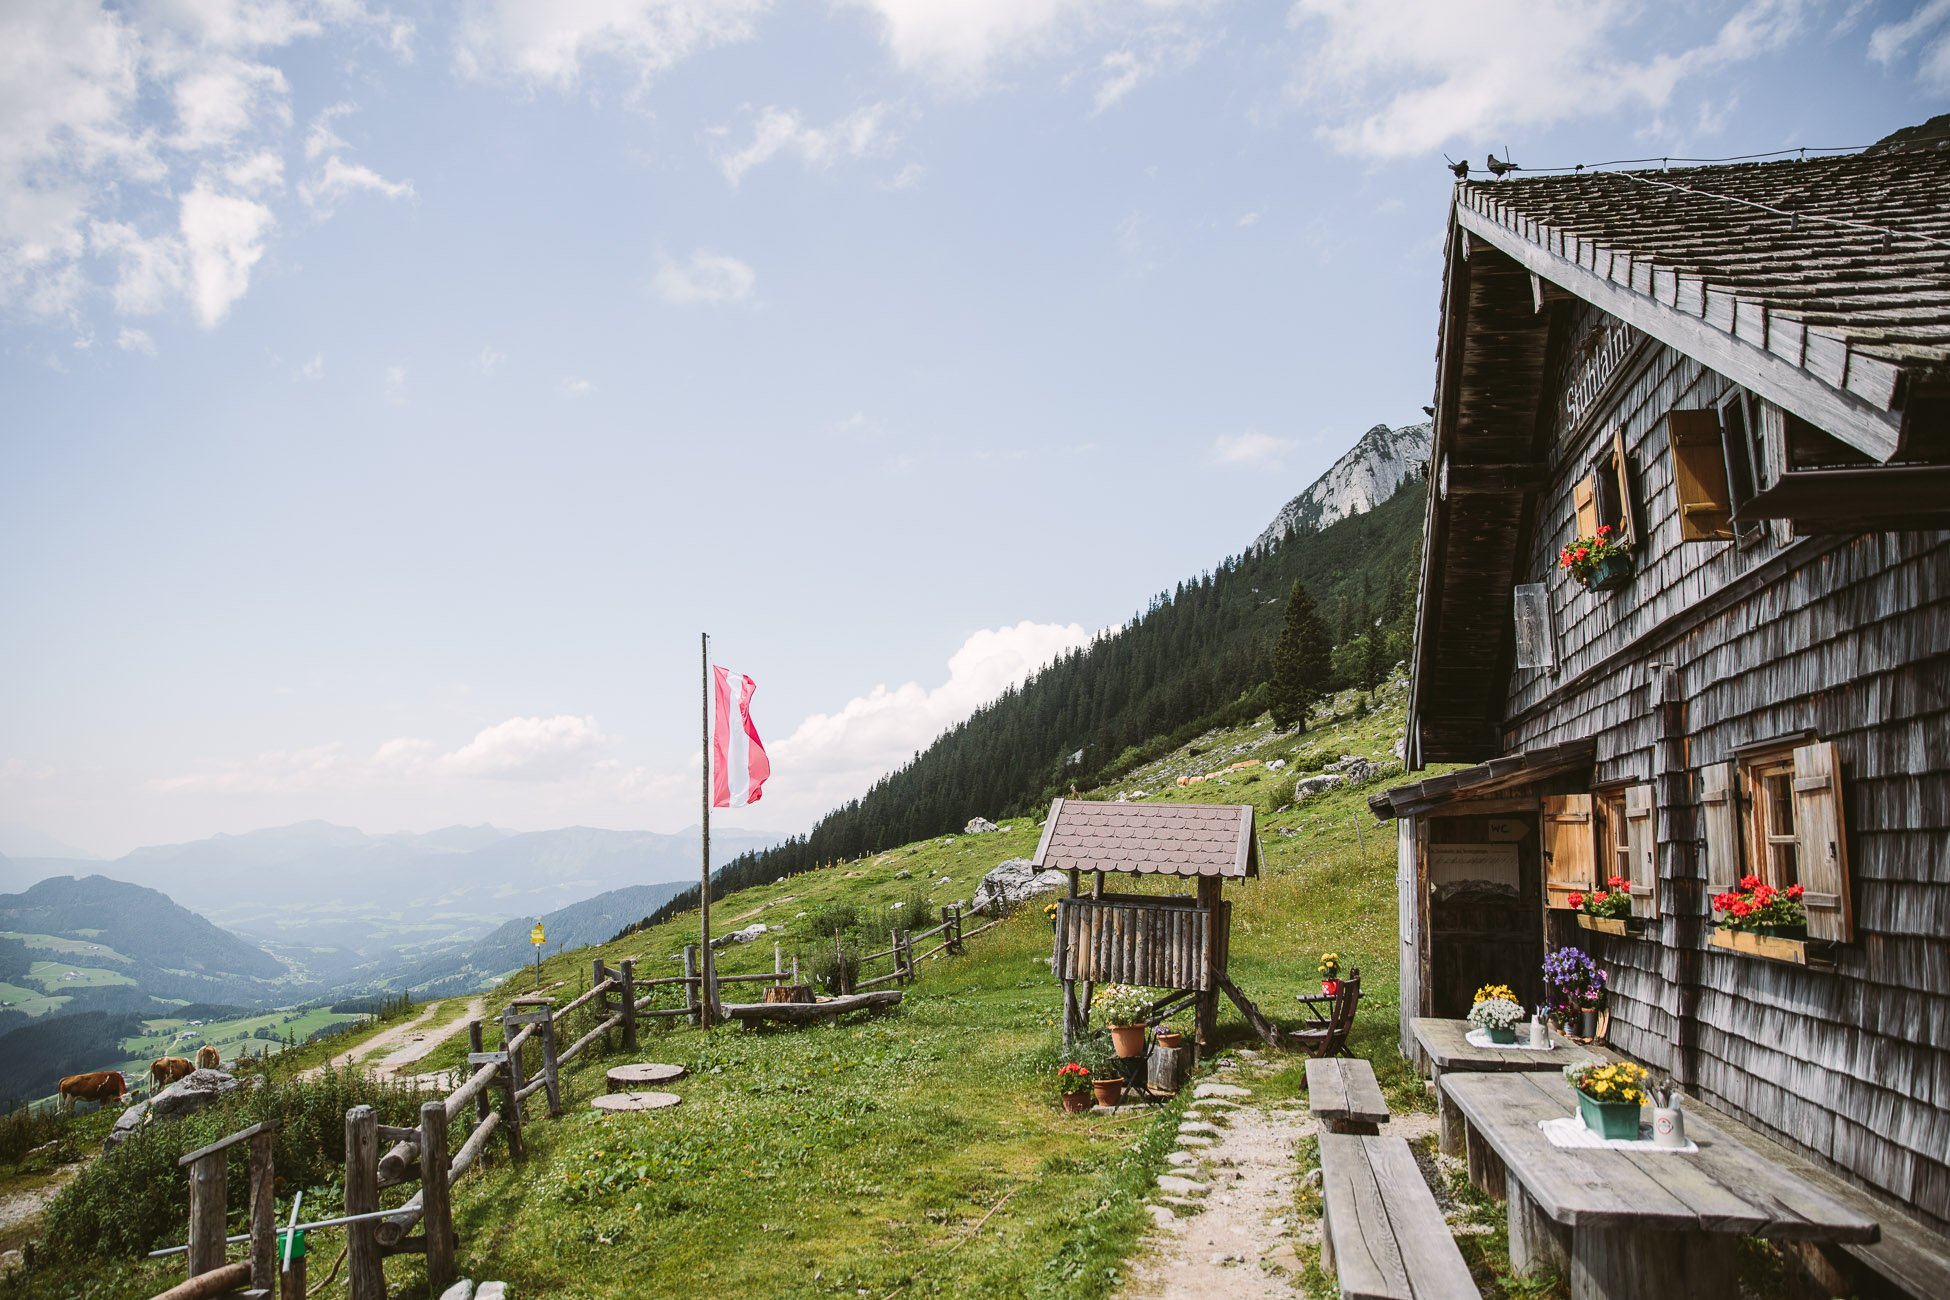 Hut in Dachstein Schladming Region in Austria